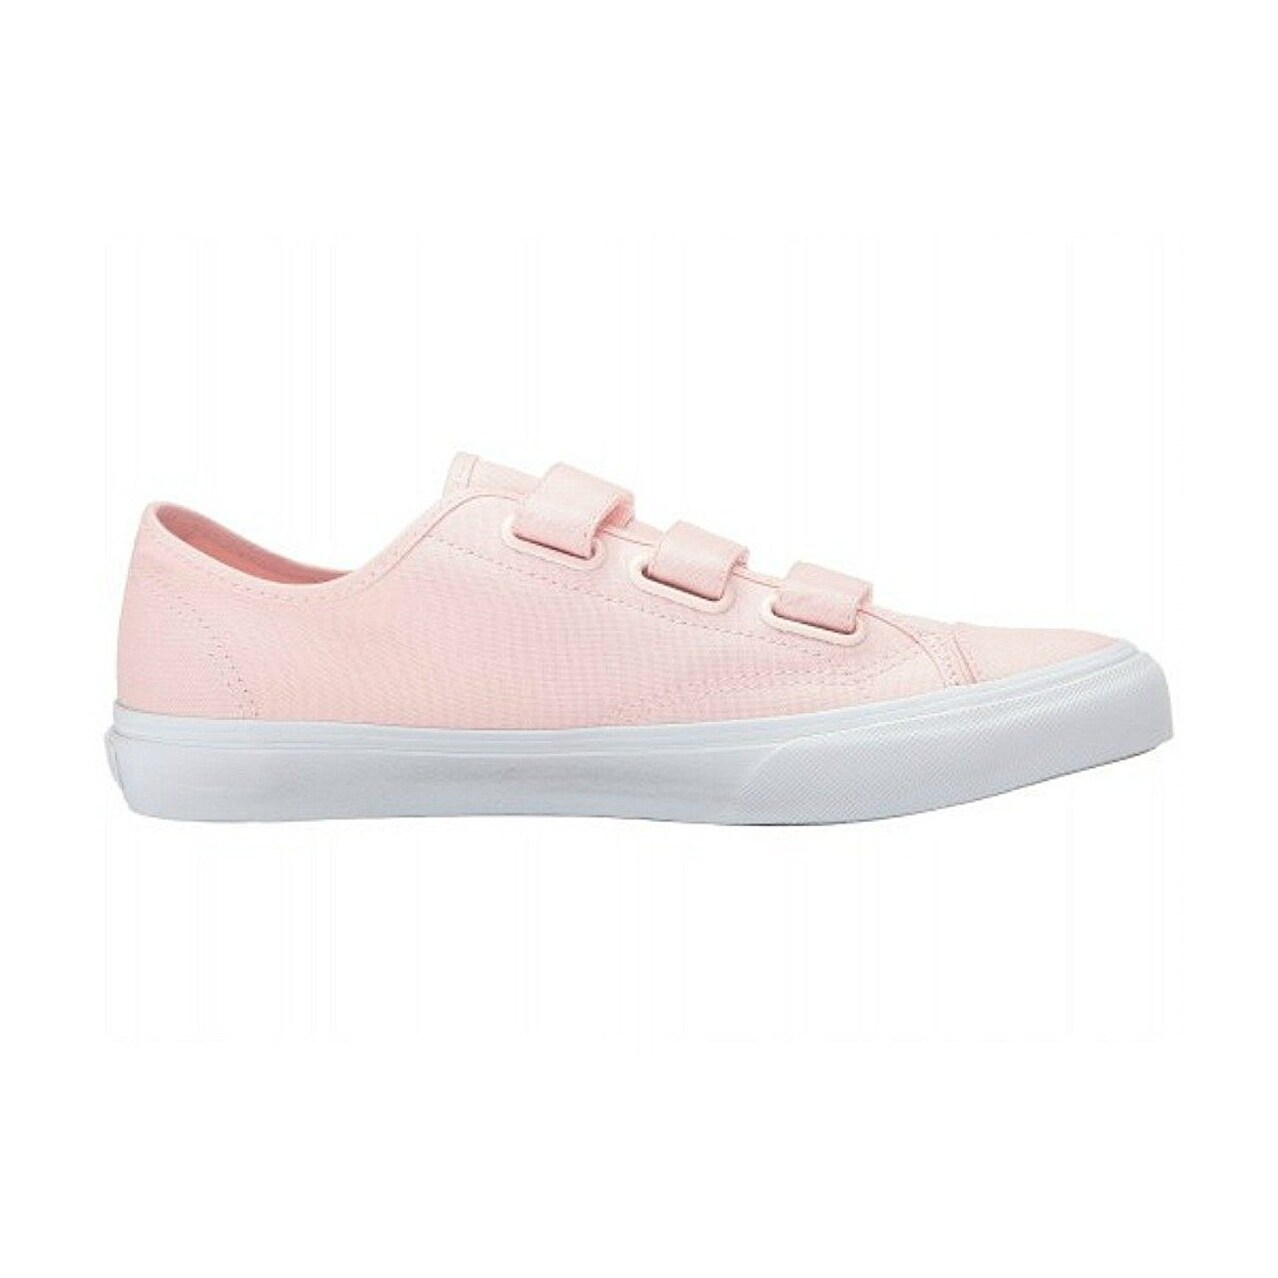 2b92fec72b Shop Vans Womens Prison Issue Low Top Fashion Sneakers - Free Shipping On  Orders Over  45 - Overstock - 18539353